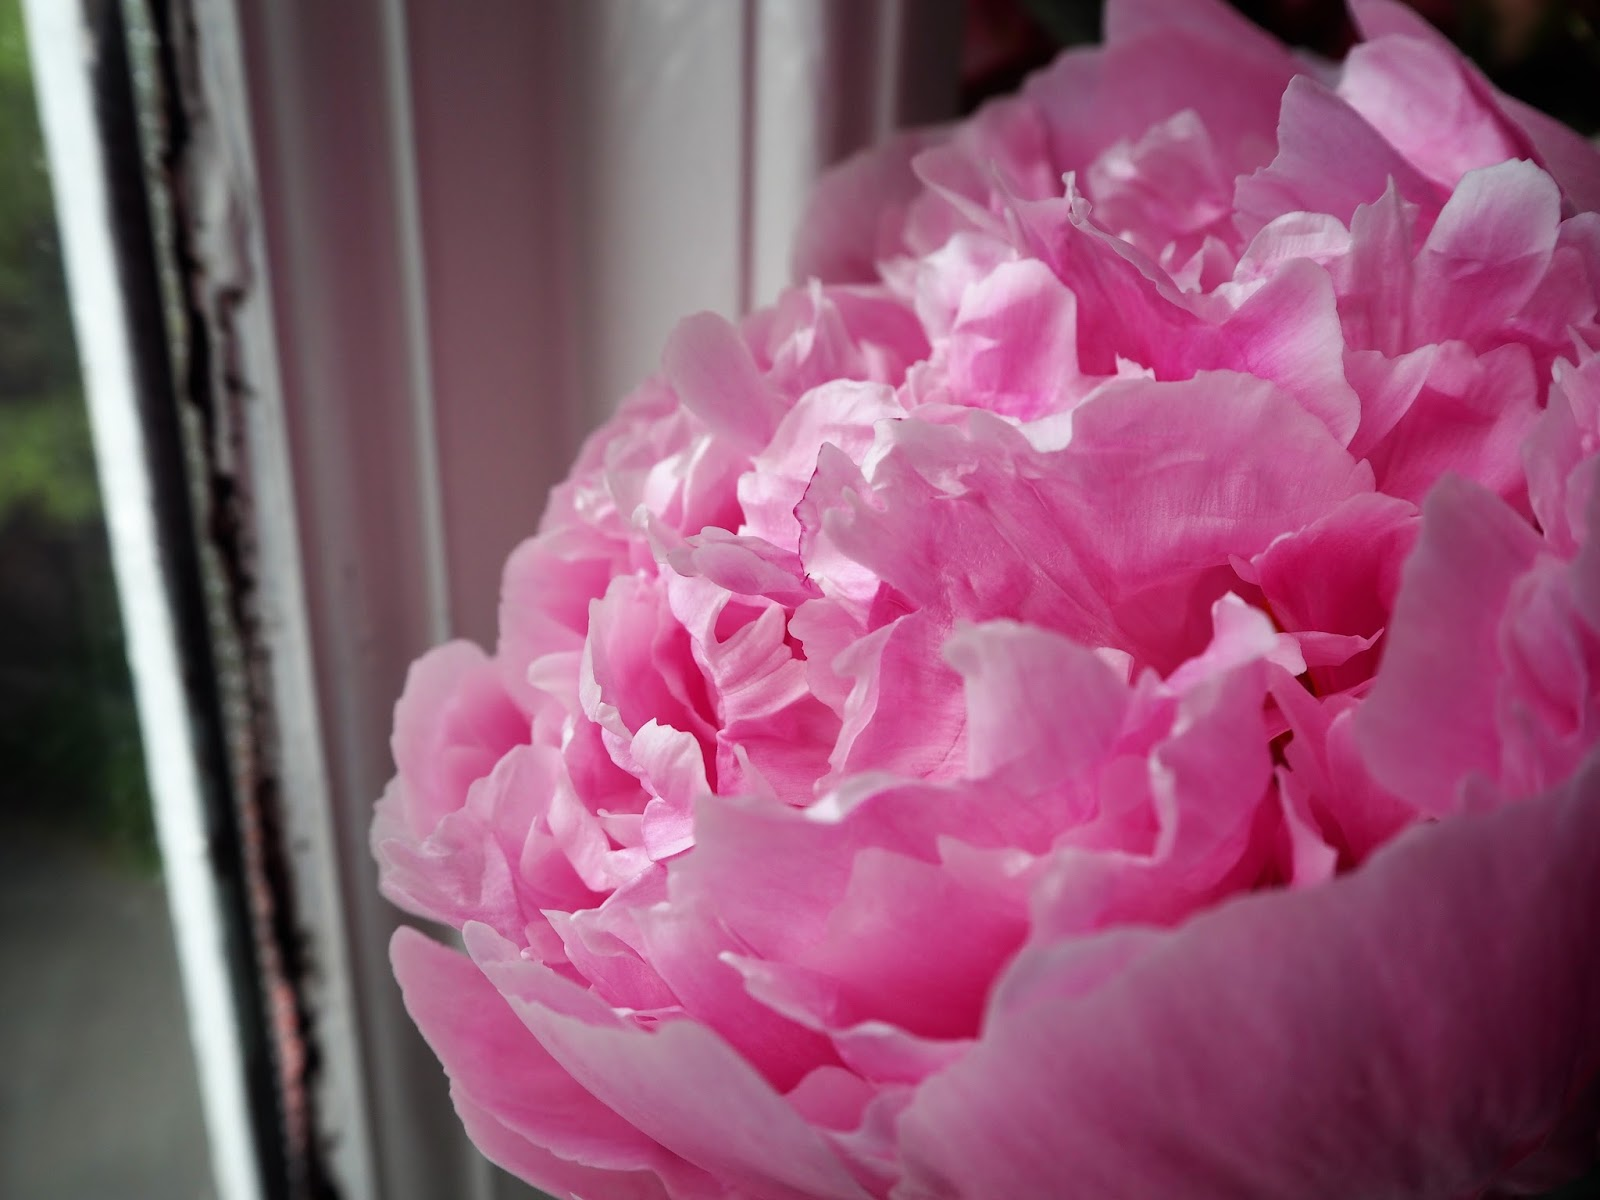 Photographs of Peonies